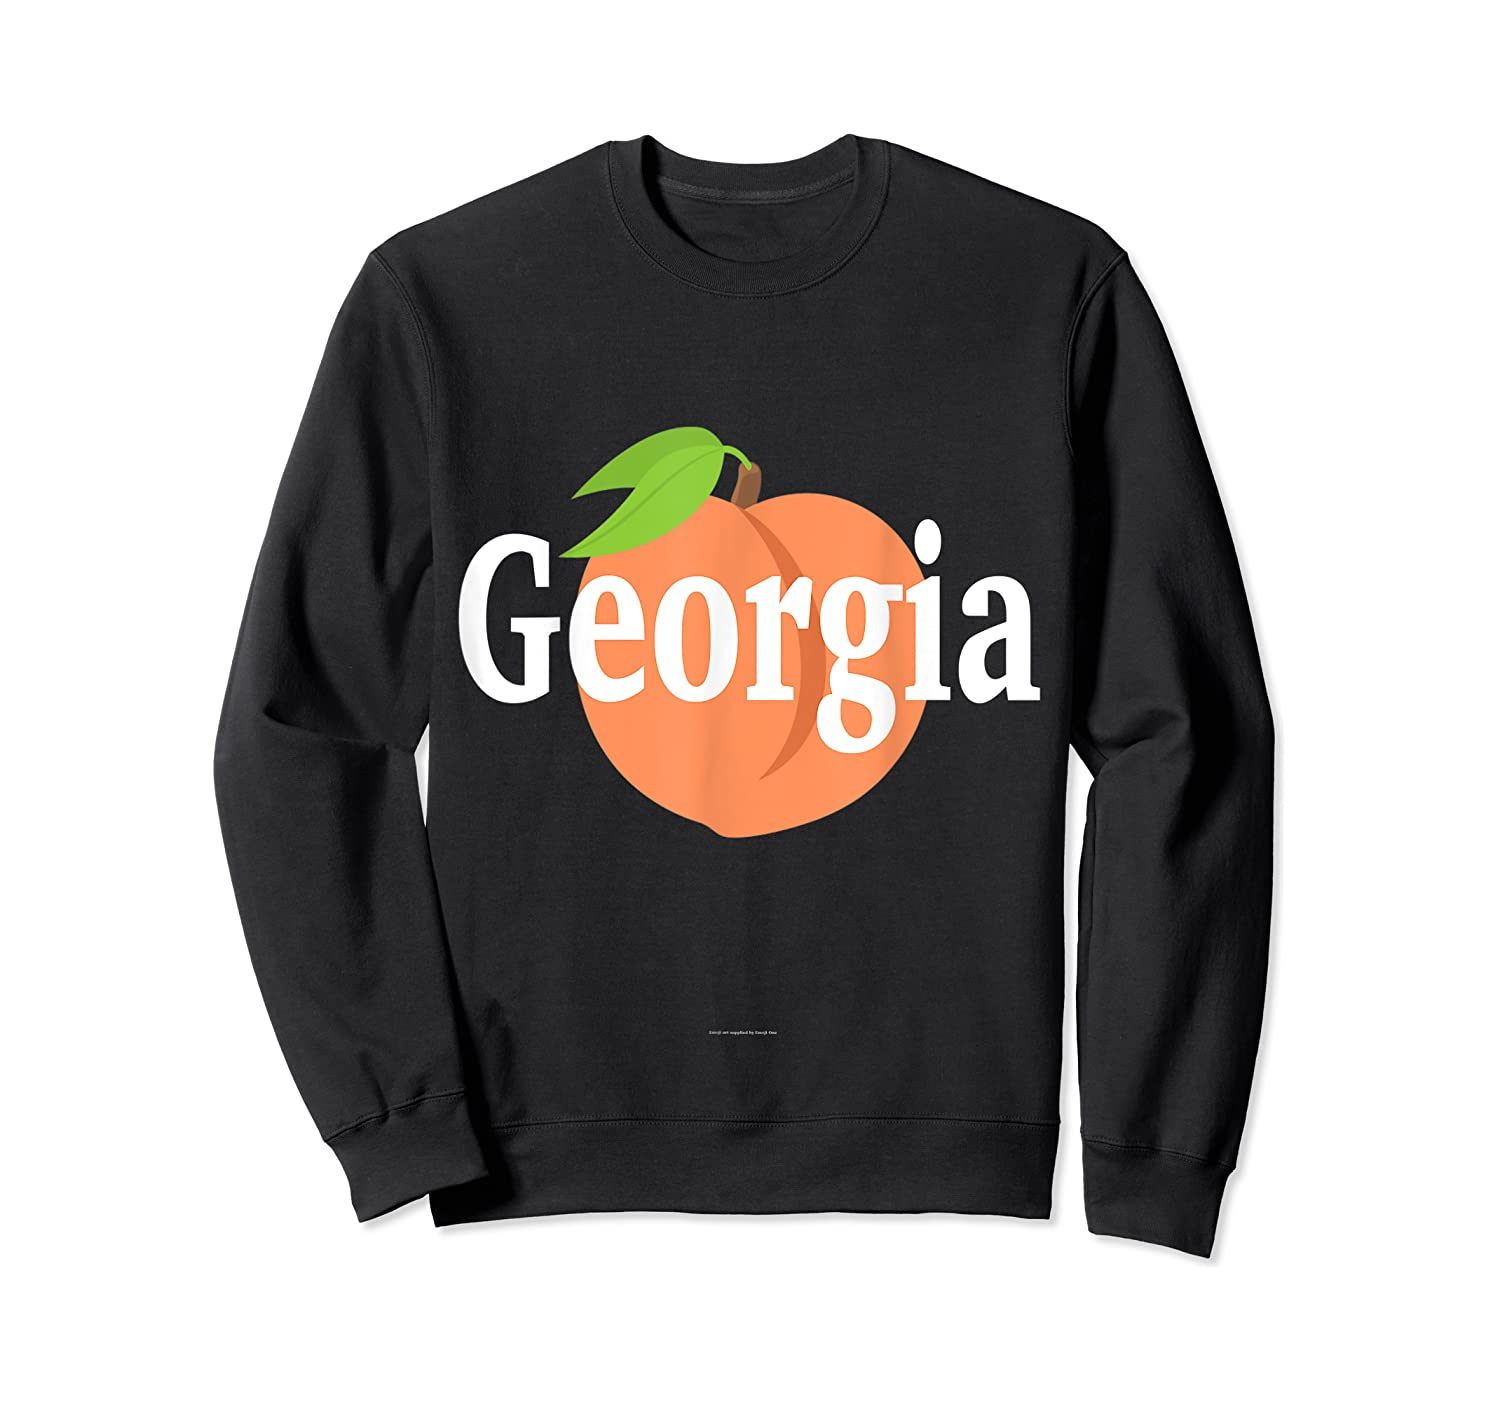 Georgia Peach State Pride Southern Roots T Shirt Crewneck Sweater